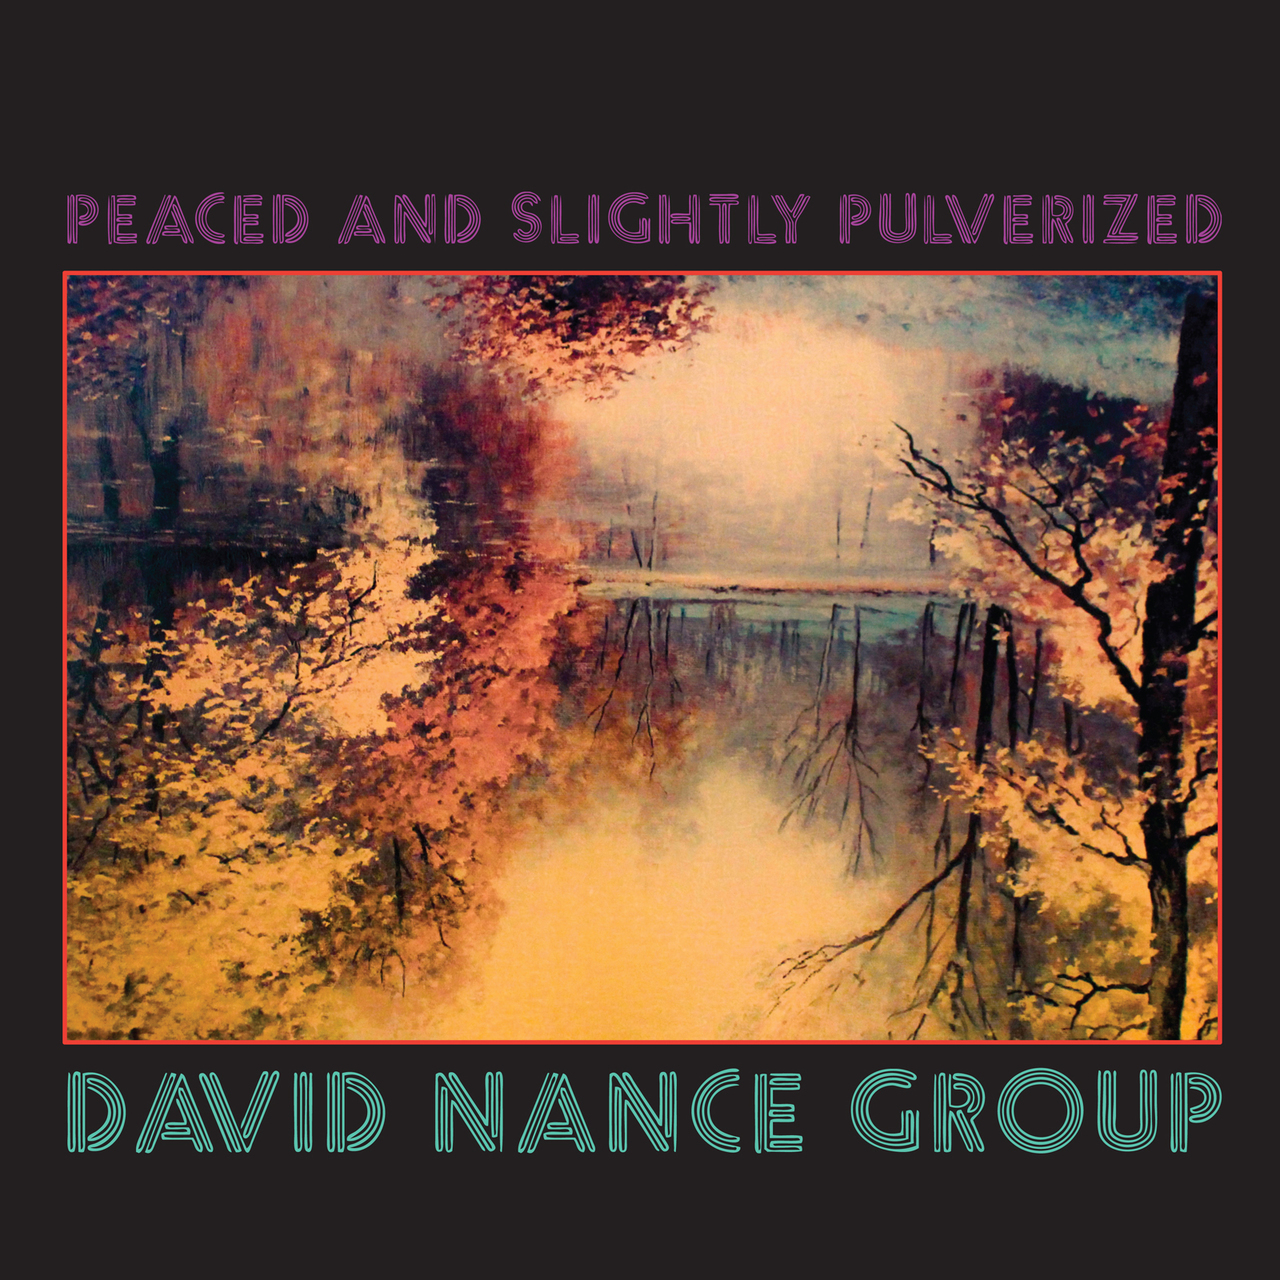 David Nance Group Peaced and Slightly Pulverized